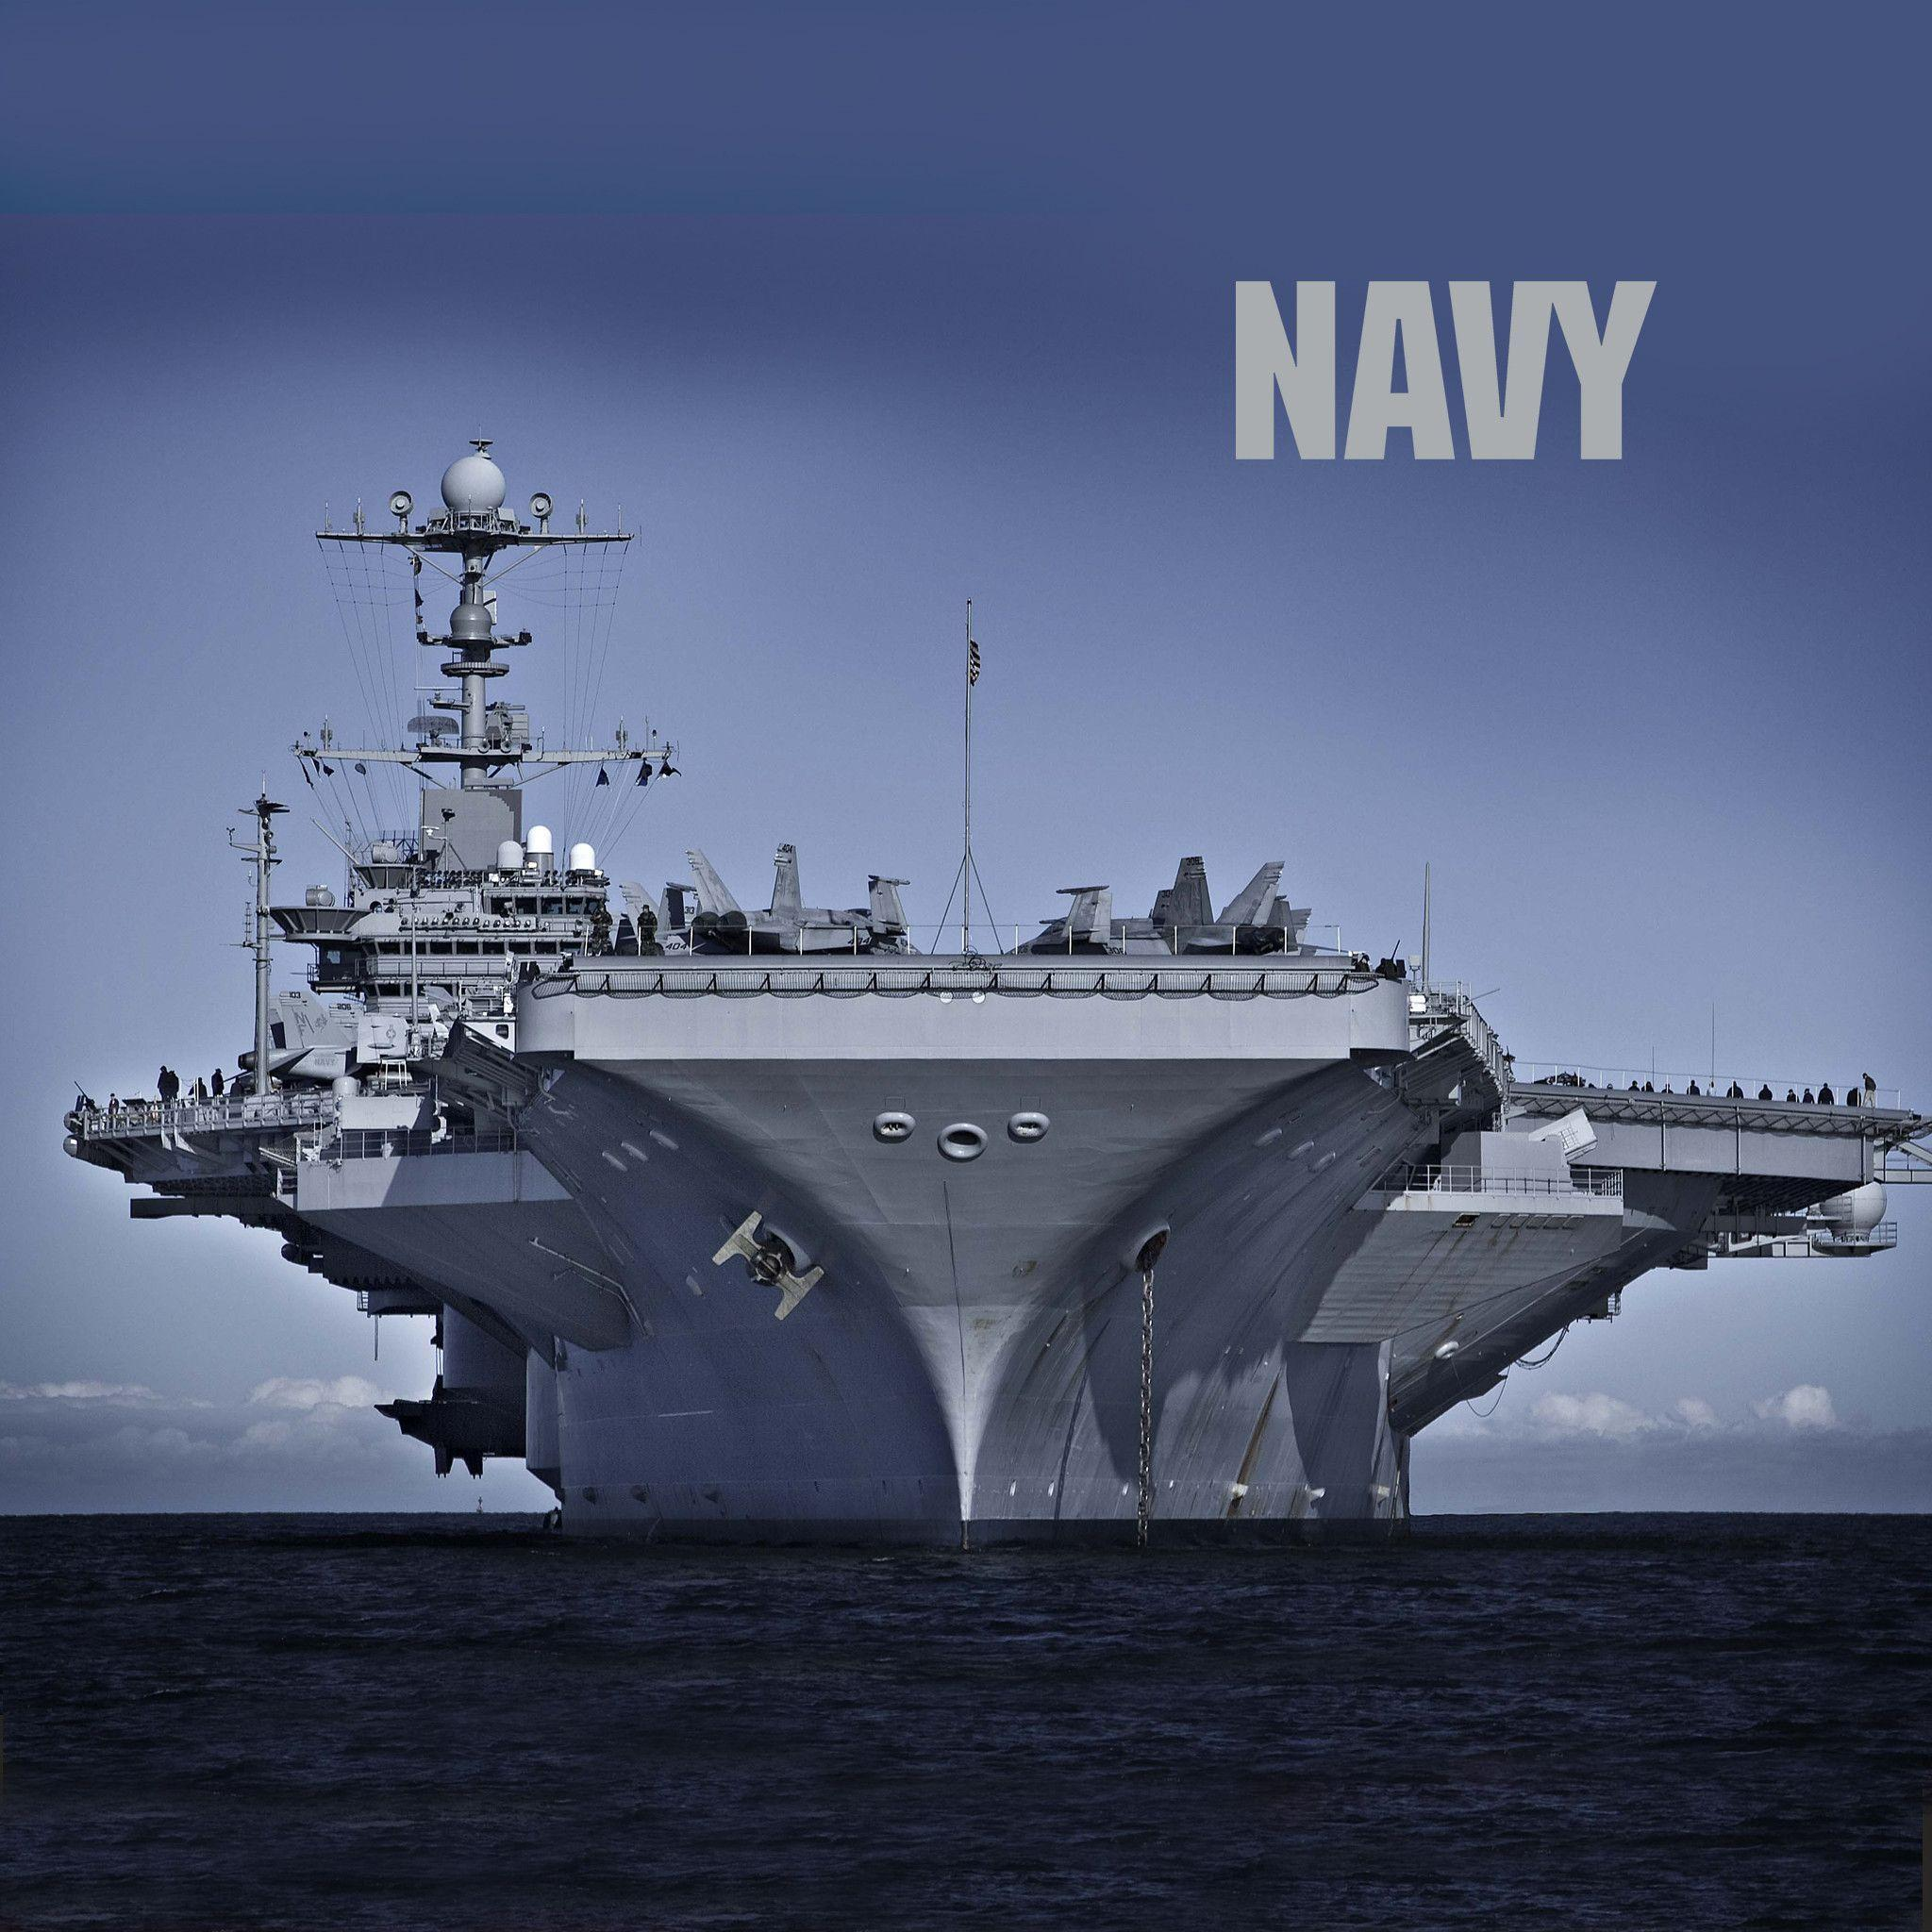 US Navy Wallpapers for your New iPad with Retina Display